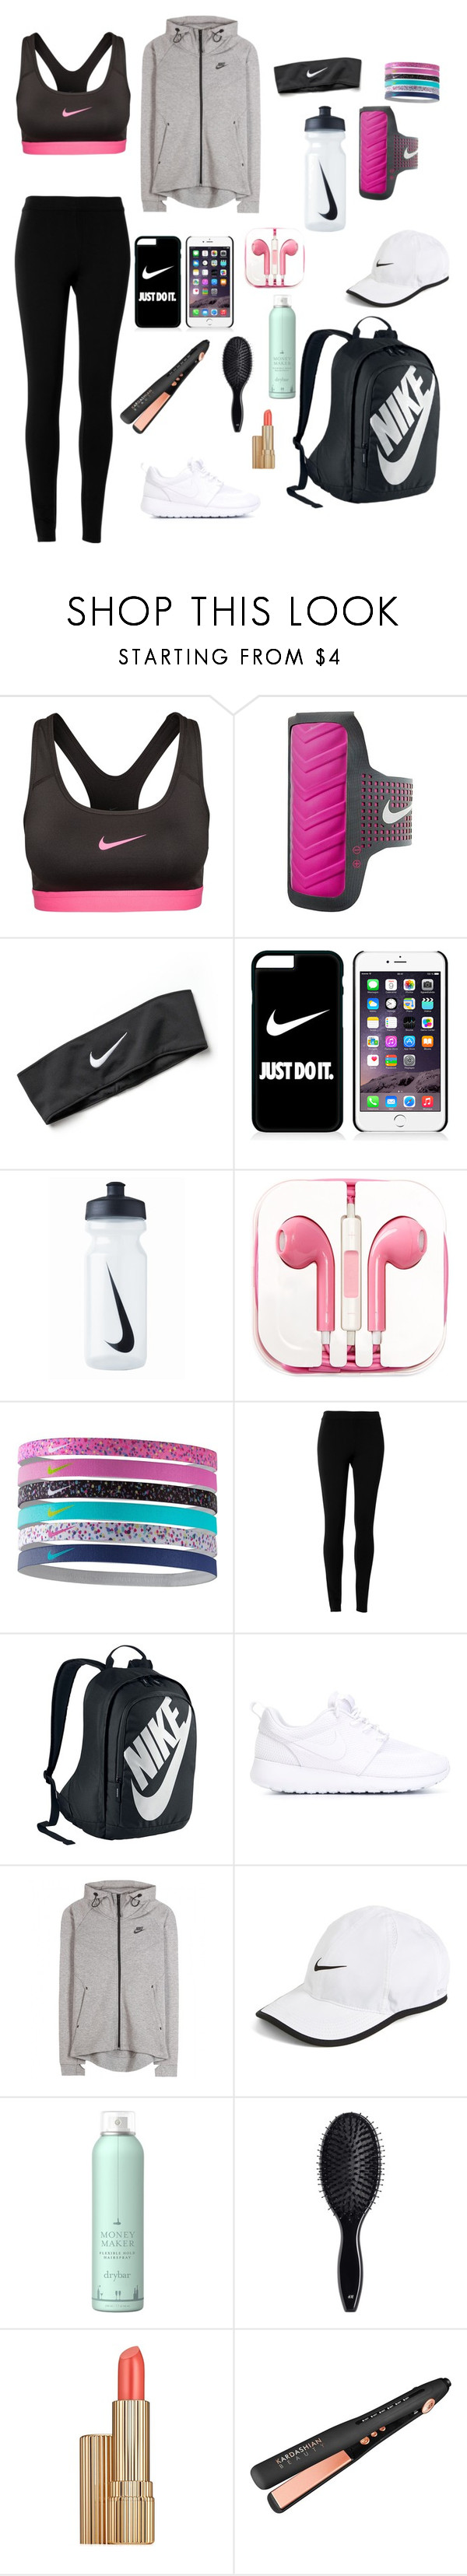 """""""Untitled #12"""" by shirelmansur ❤ liked on Polyvore featuring NIKE, PhunkeeTree, Max Studio, Drybar, H&M and Estée Lauder"""